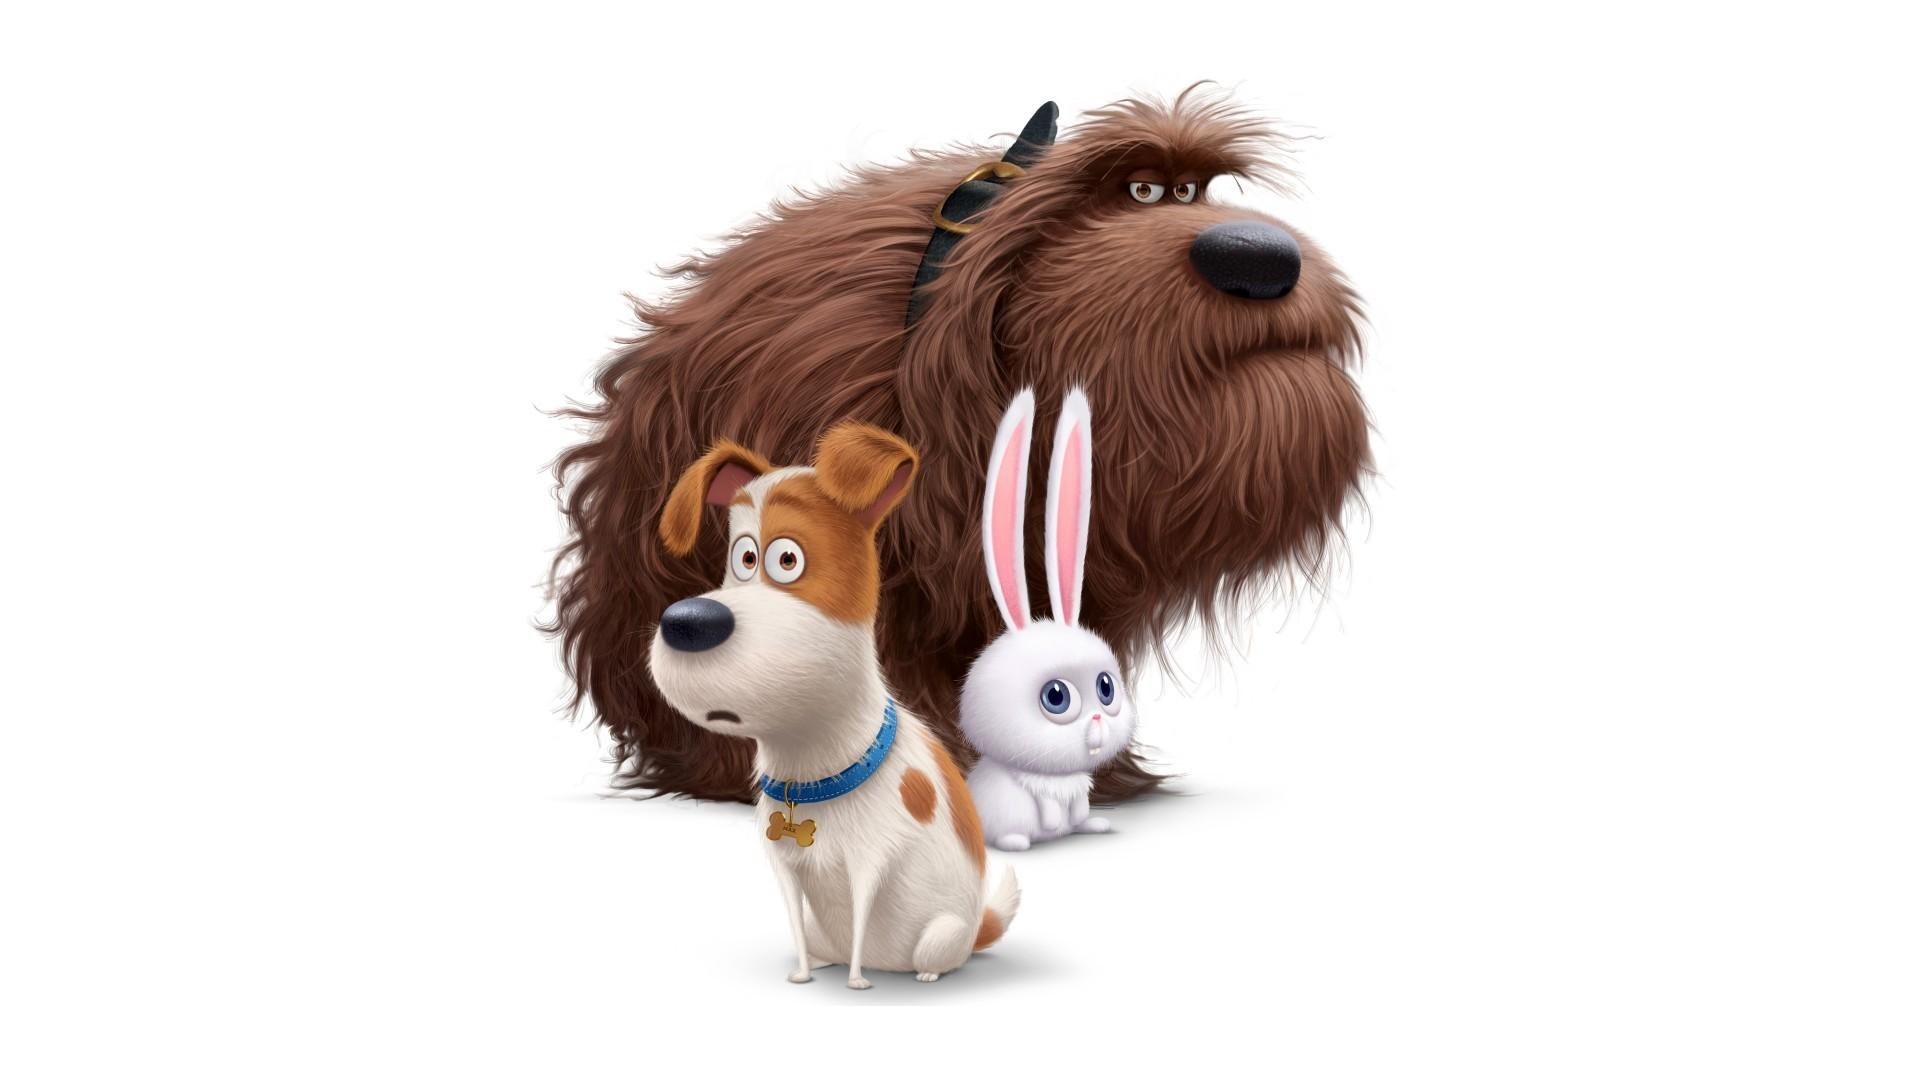 Max, Duke, cartoon characters Snow Secret Life of Pets